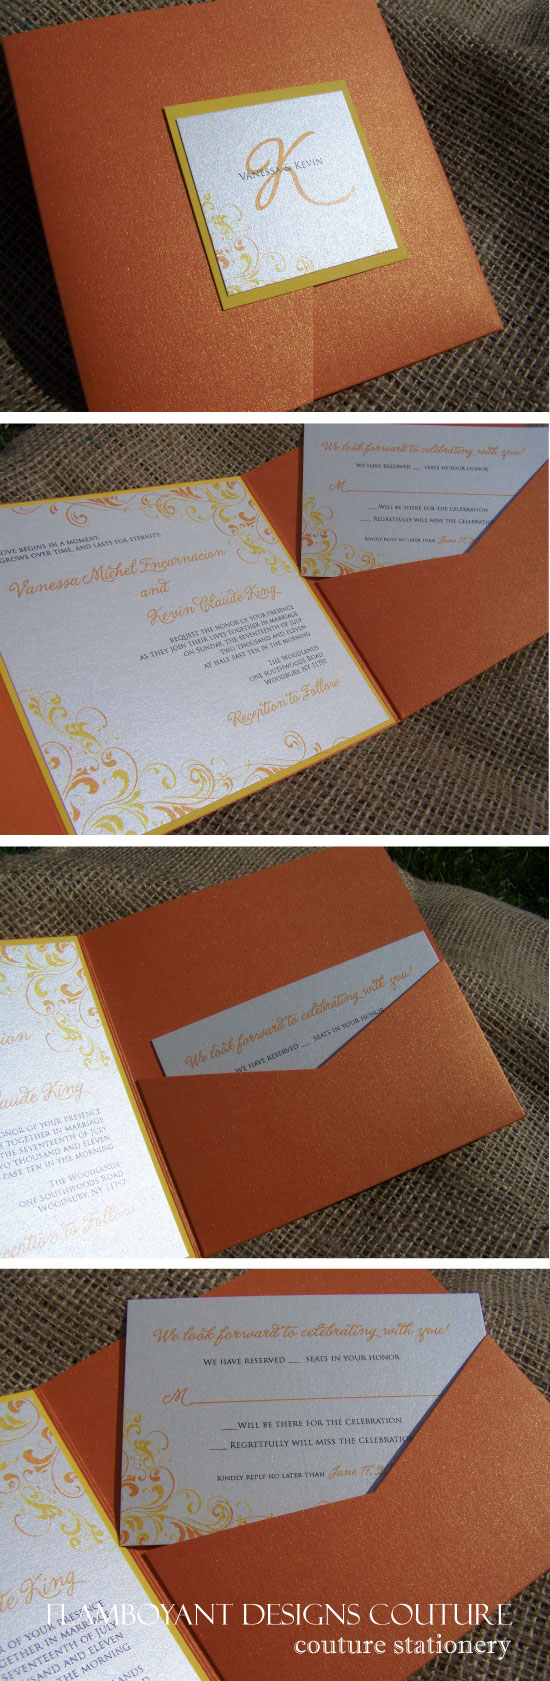 Citrus Theme Pocket Fold Wedding Invitations